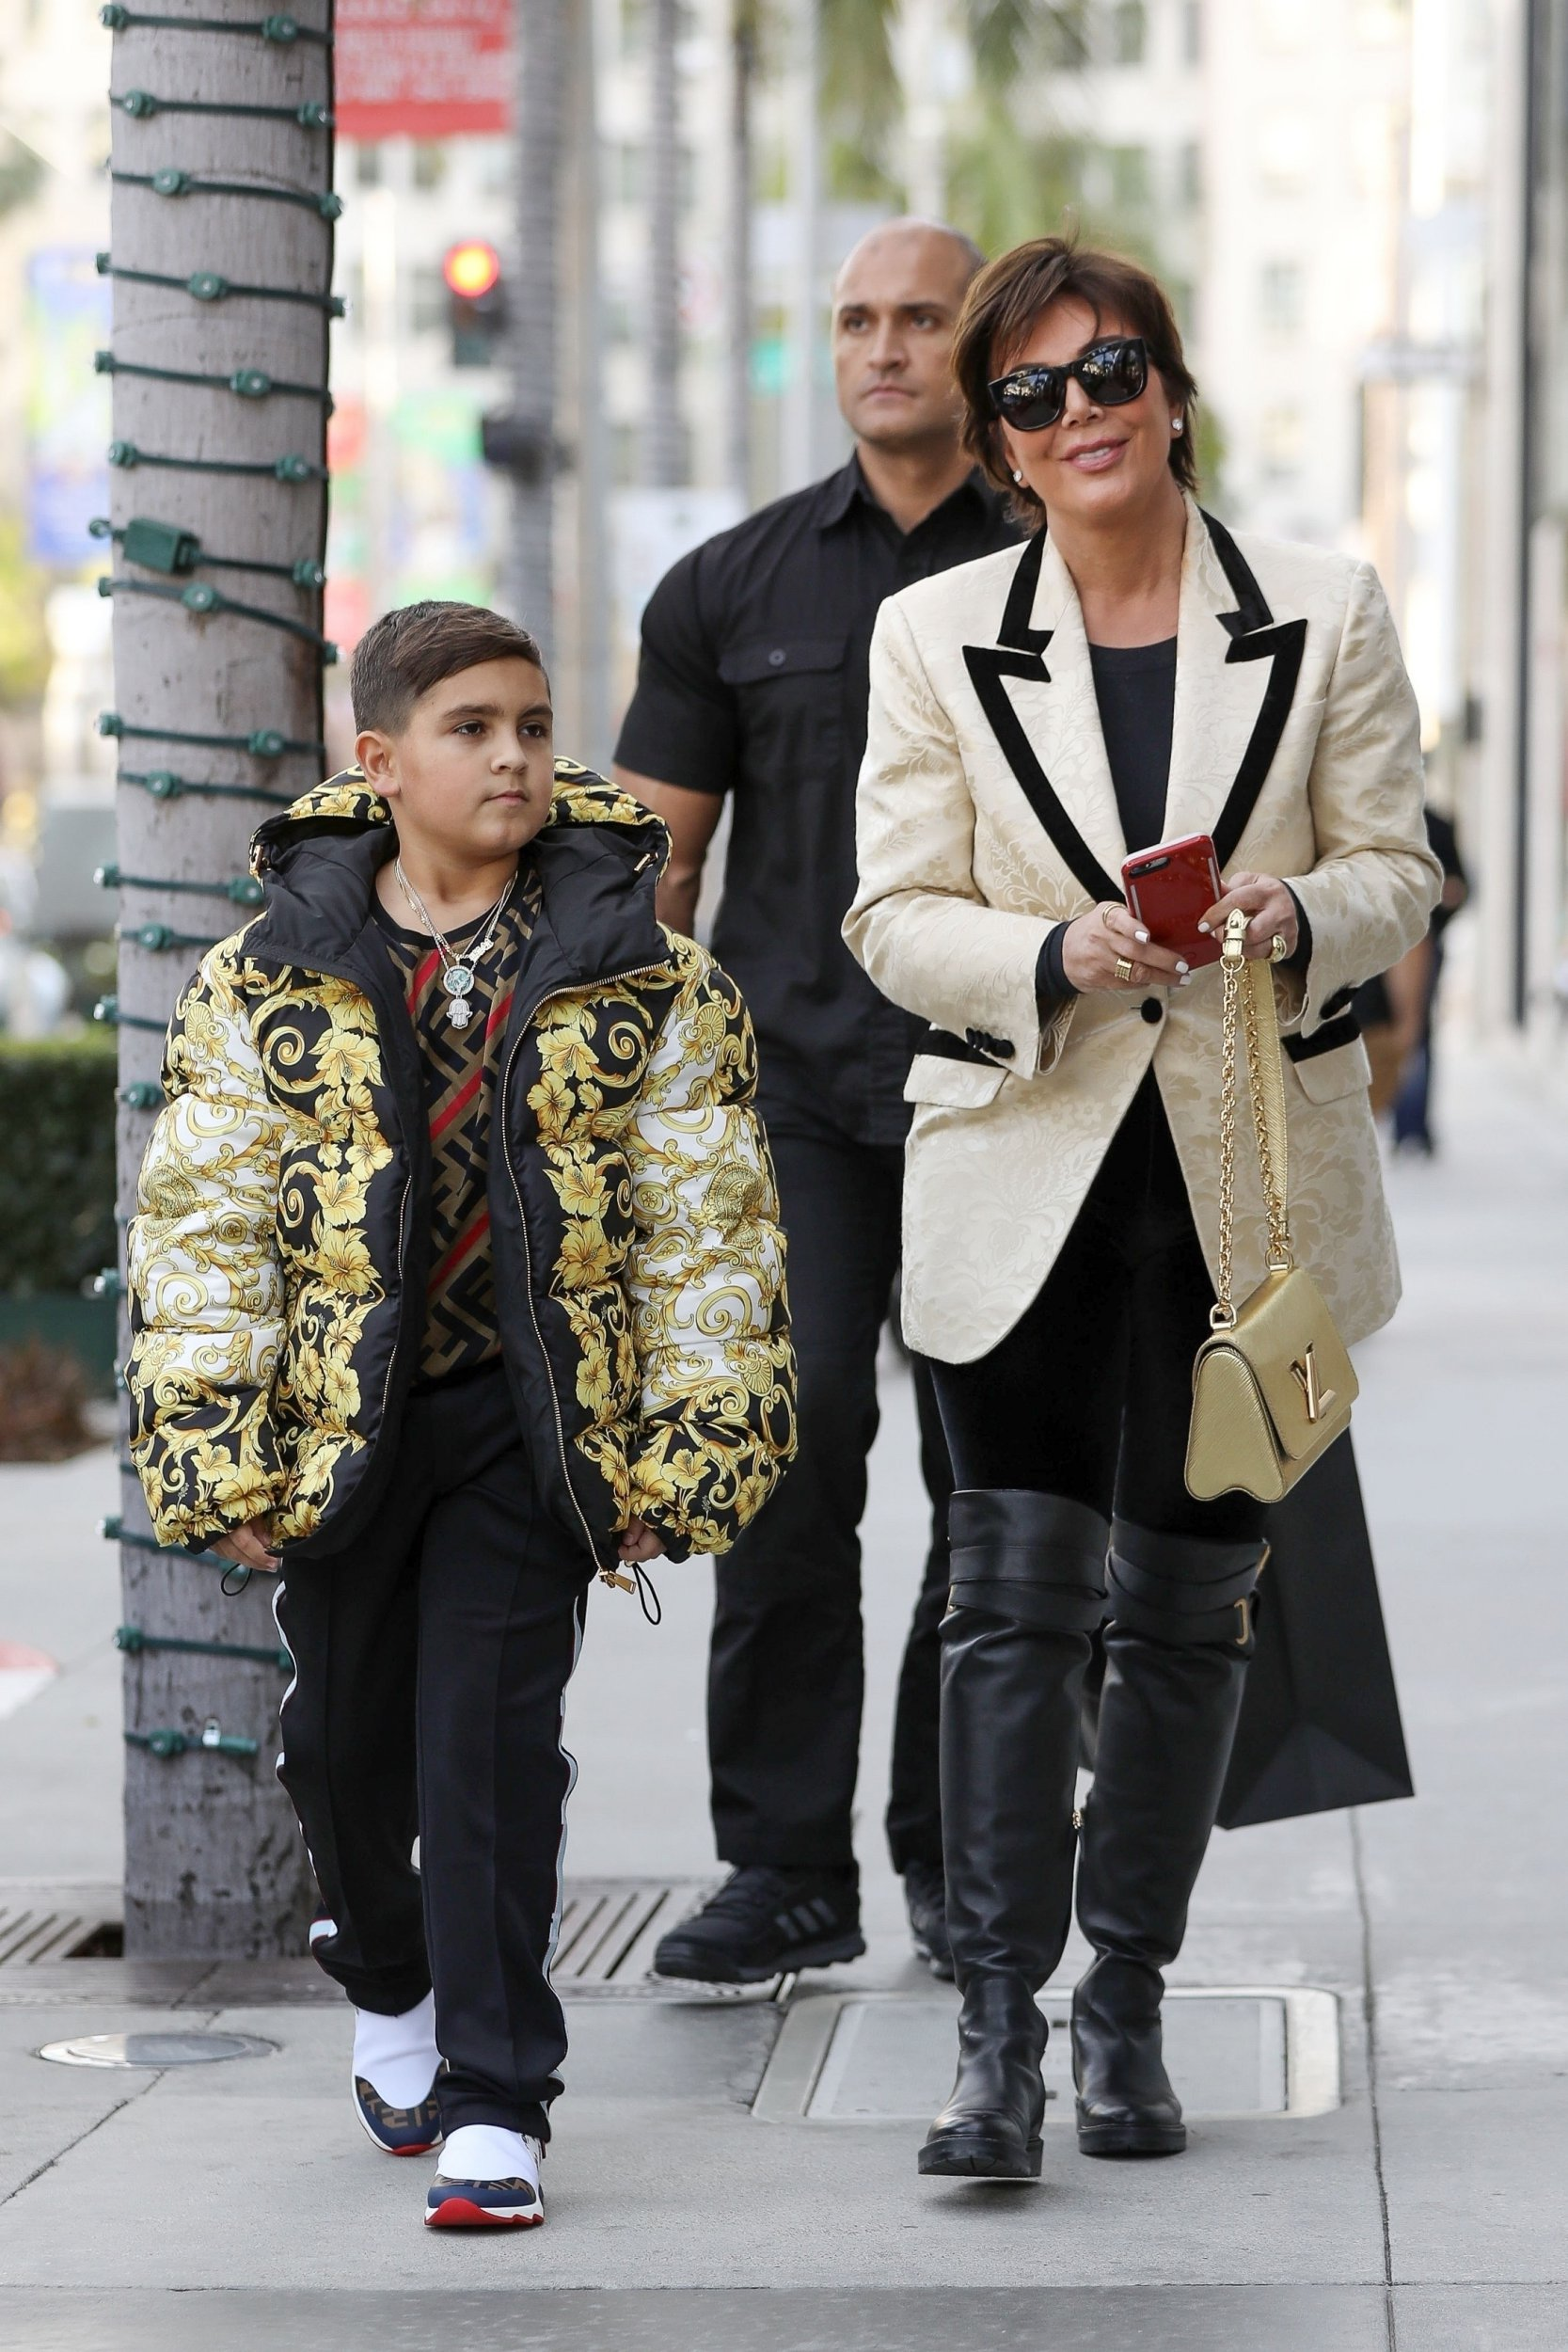 Beverly Hills, CA - Momager Kris Jenner gets her grandson Mason Disick an expensive looking Versace puffer jacket as they both go Christmas shopping in Beverly Hills with a bodyguard. Pictured: Kris Jenner, Mason Dash Disick BACKGRID USA 18 DECEMBER 2018 BYLINE MUST READ: Clint Brewer / BACKGRID USA: +1 310 798 9111 / usasales@backgrid.com UK: +44 208 344 2007 / uksales@backgrid.com *UK Clients - Pictures Containing Children Please Pixelate Face Prior To Publication*